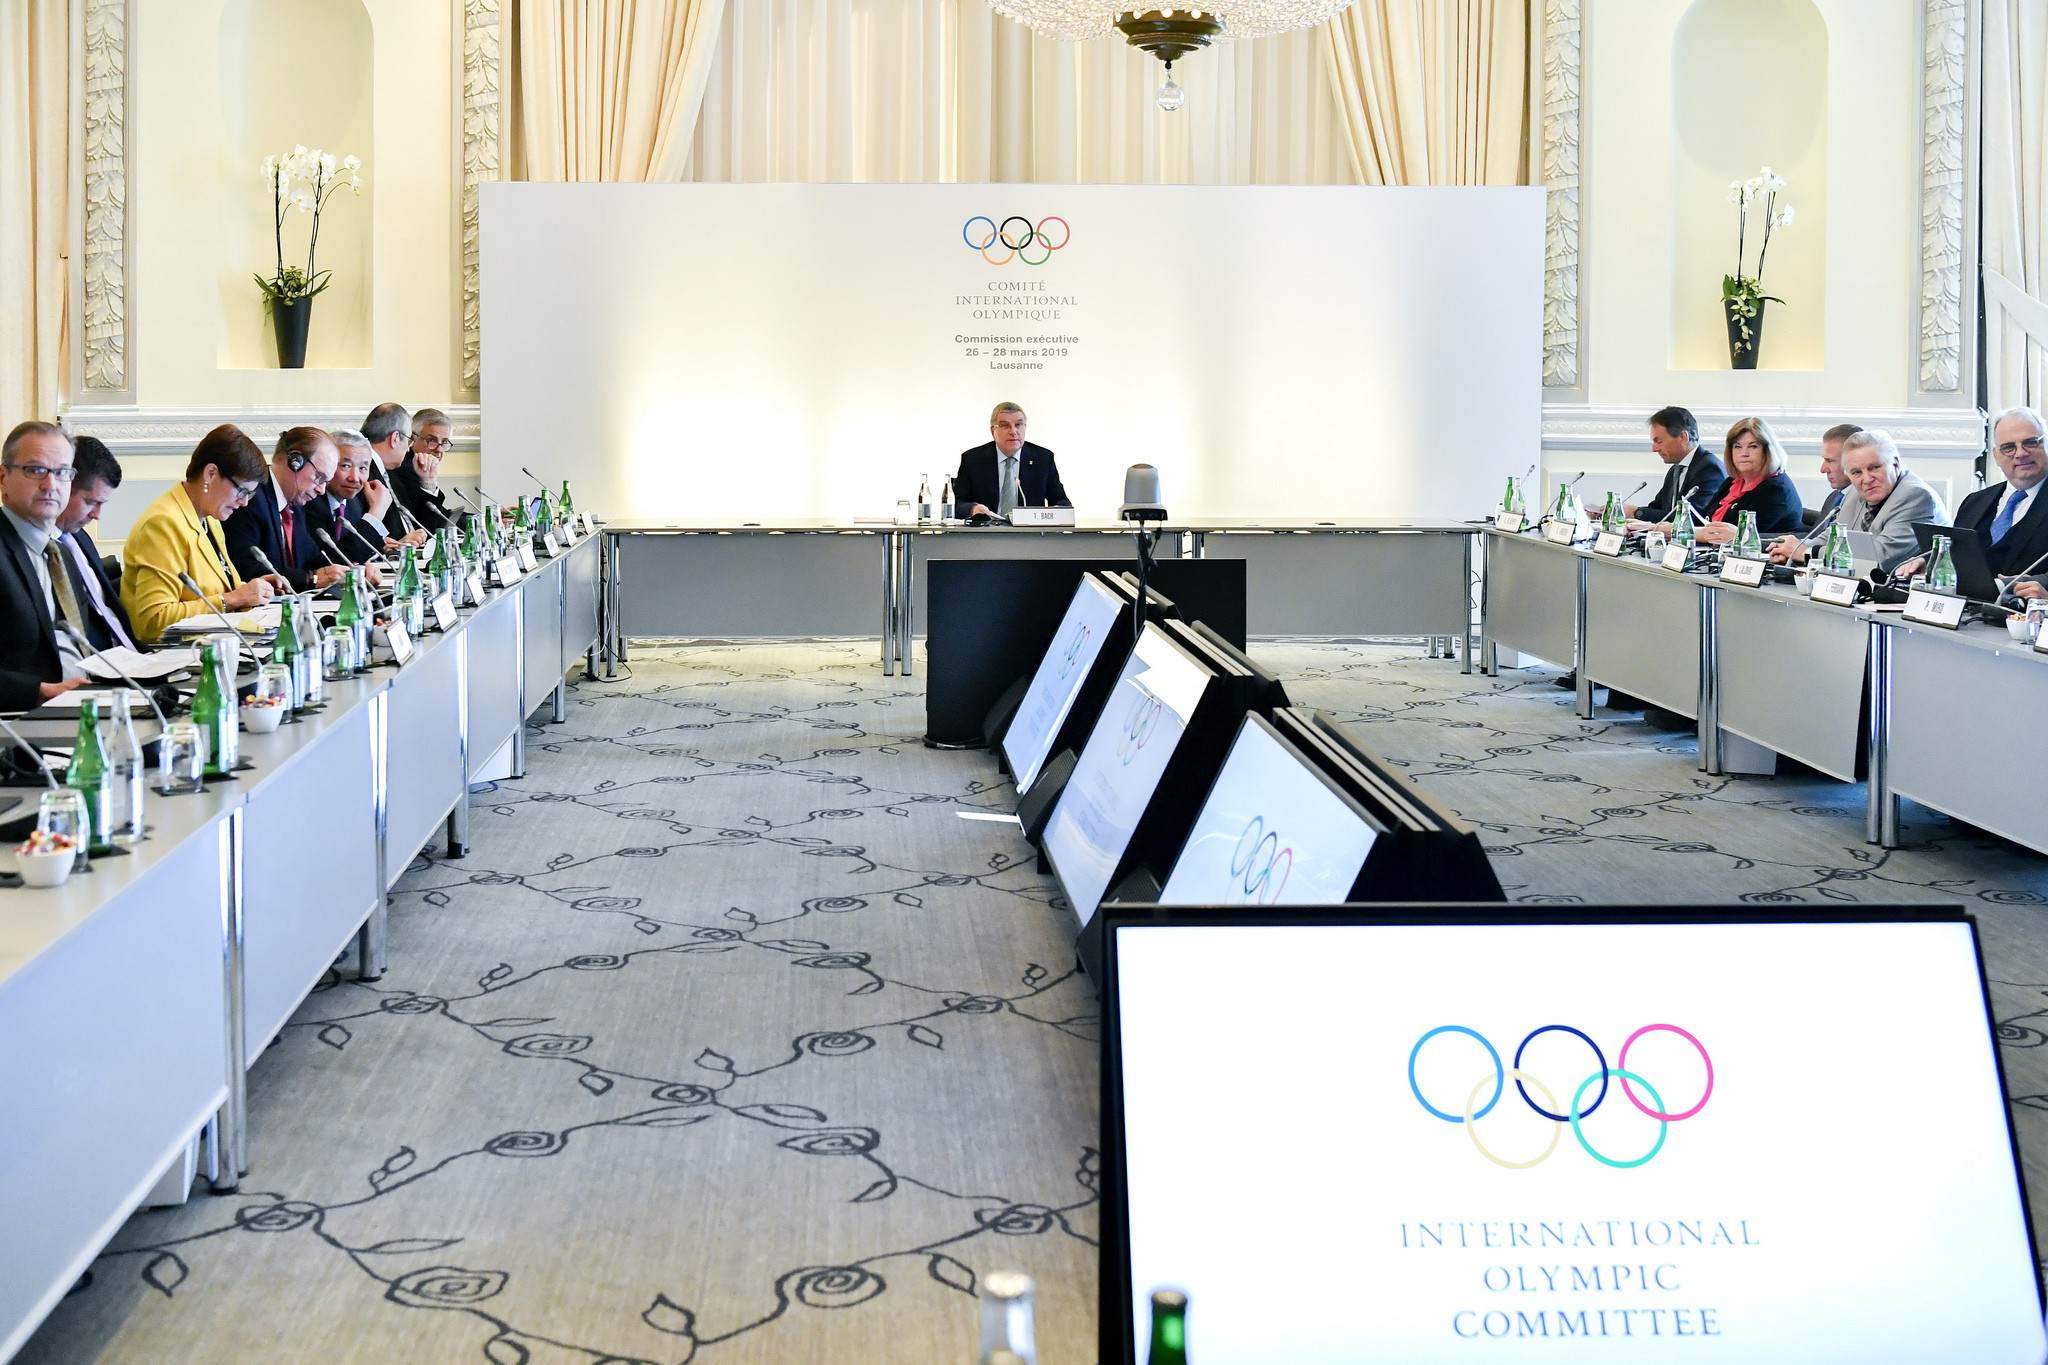 The formation of the working group was approved by the IOC Executive Board in Lausanne last week ©IOC